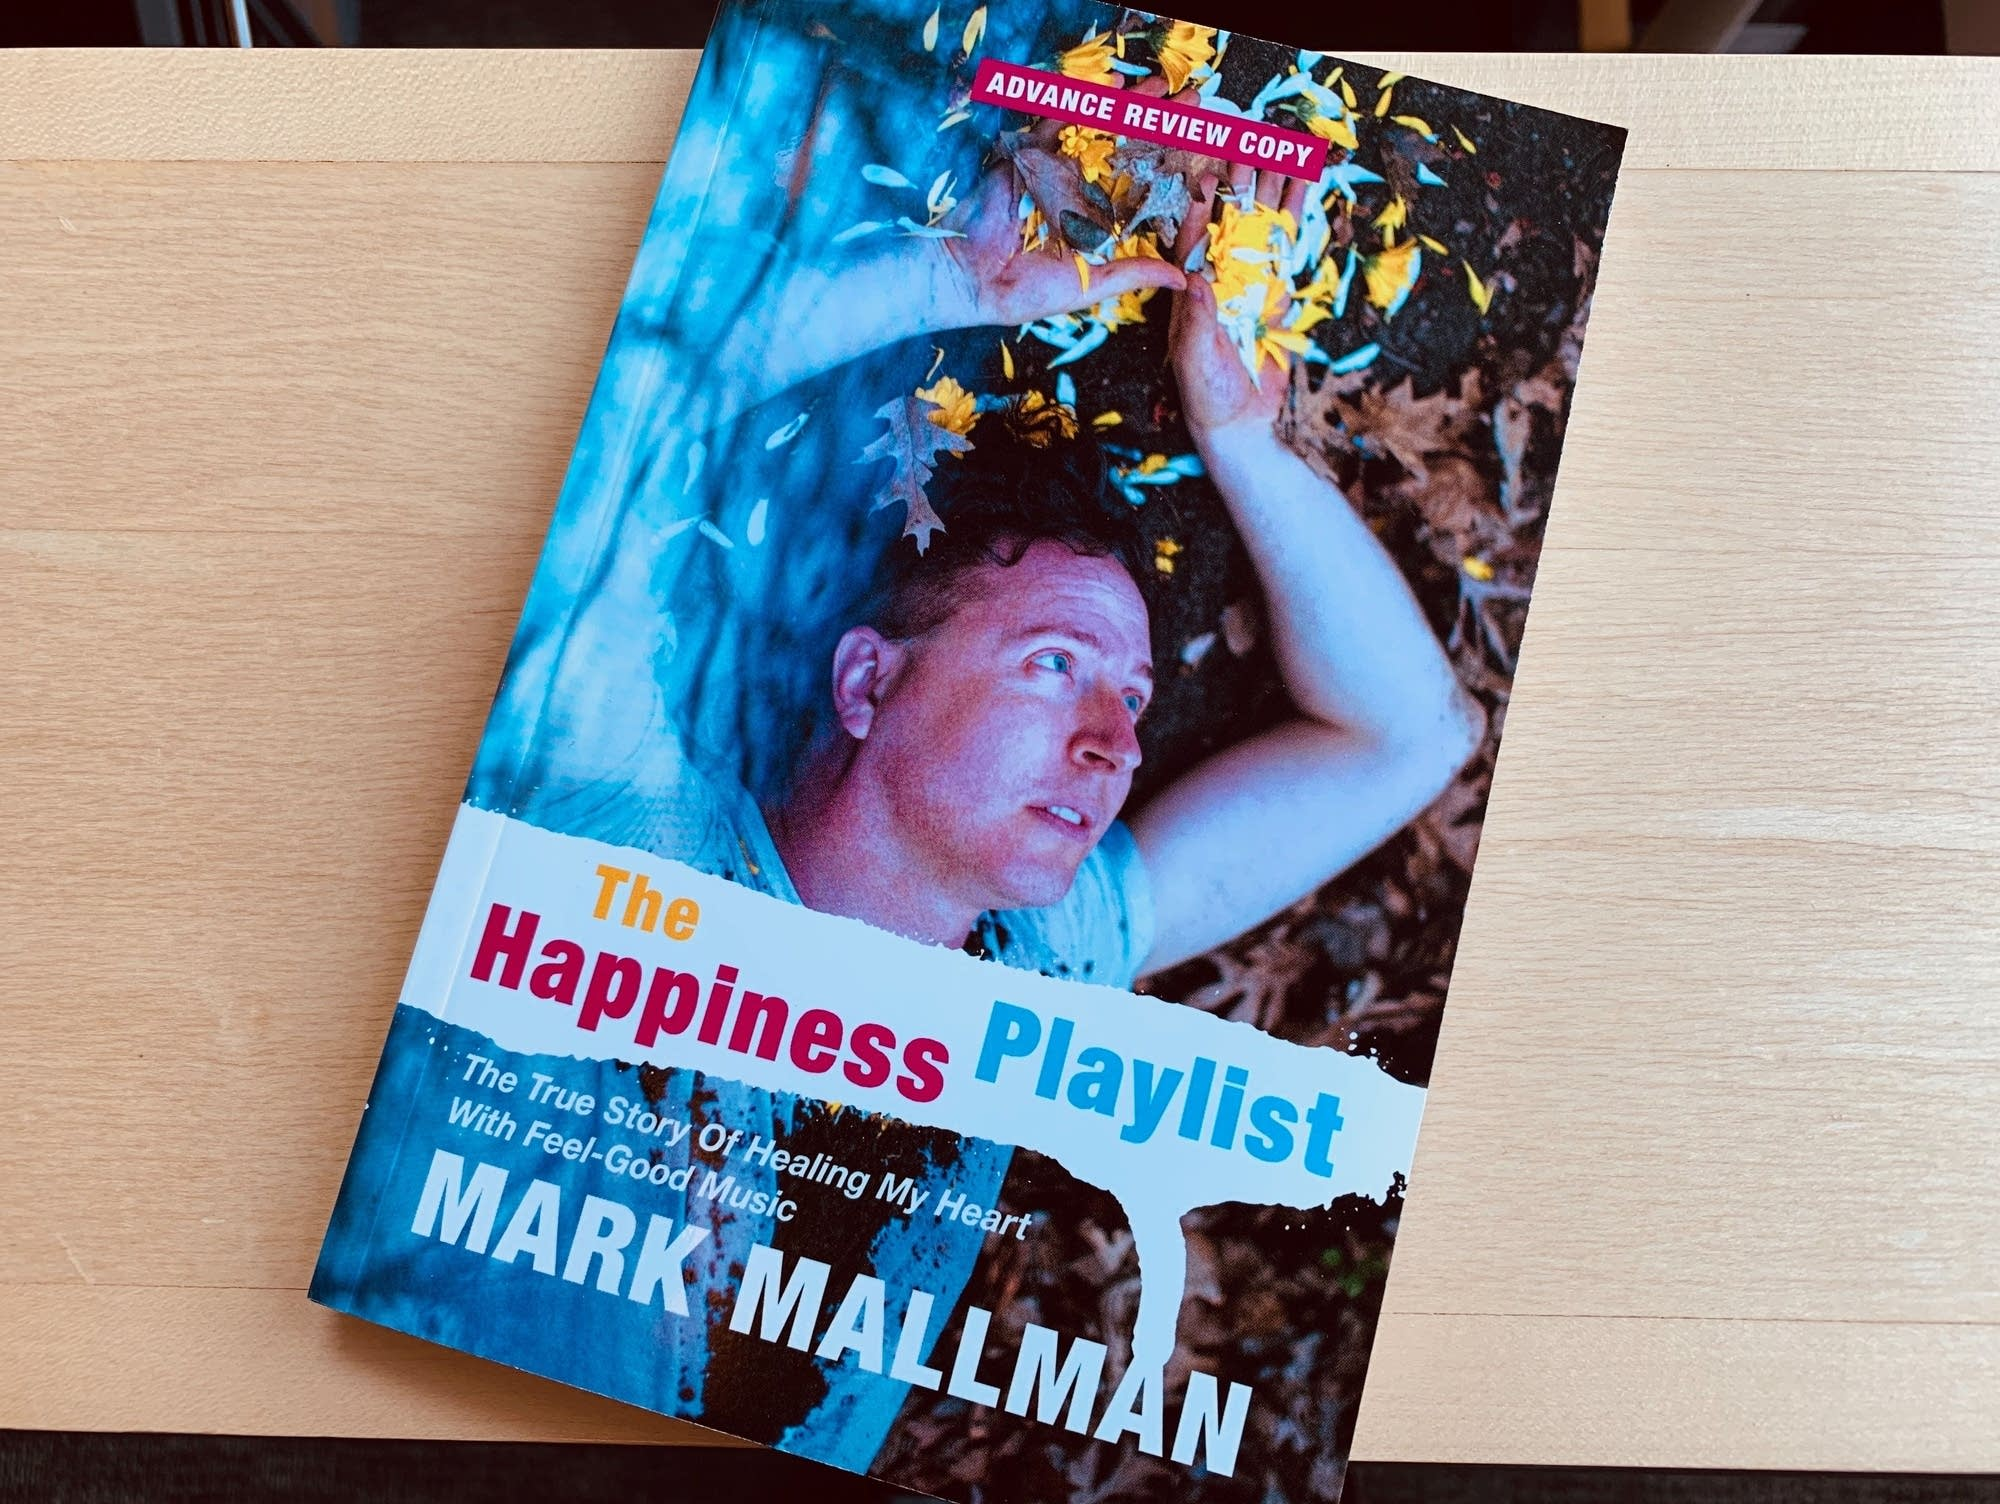 Mark Mallman's 'The Happiness Playlist.'